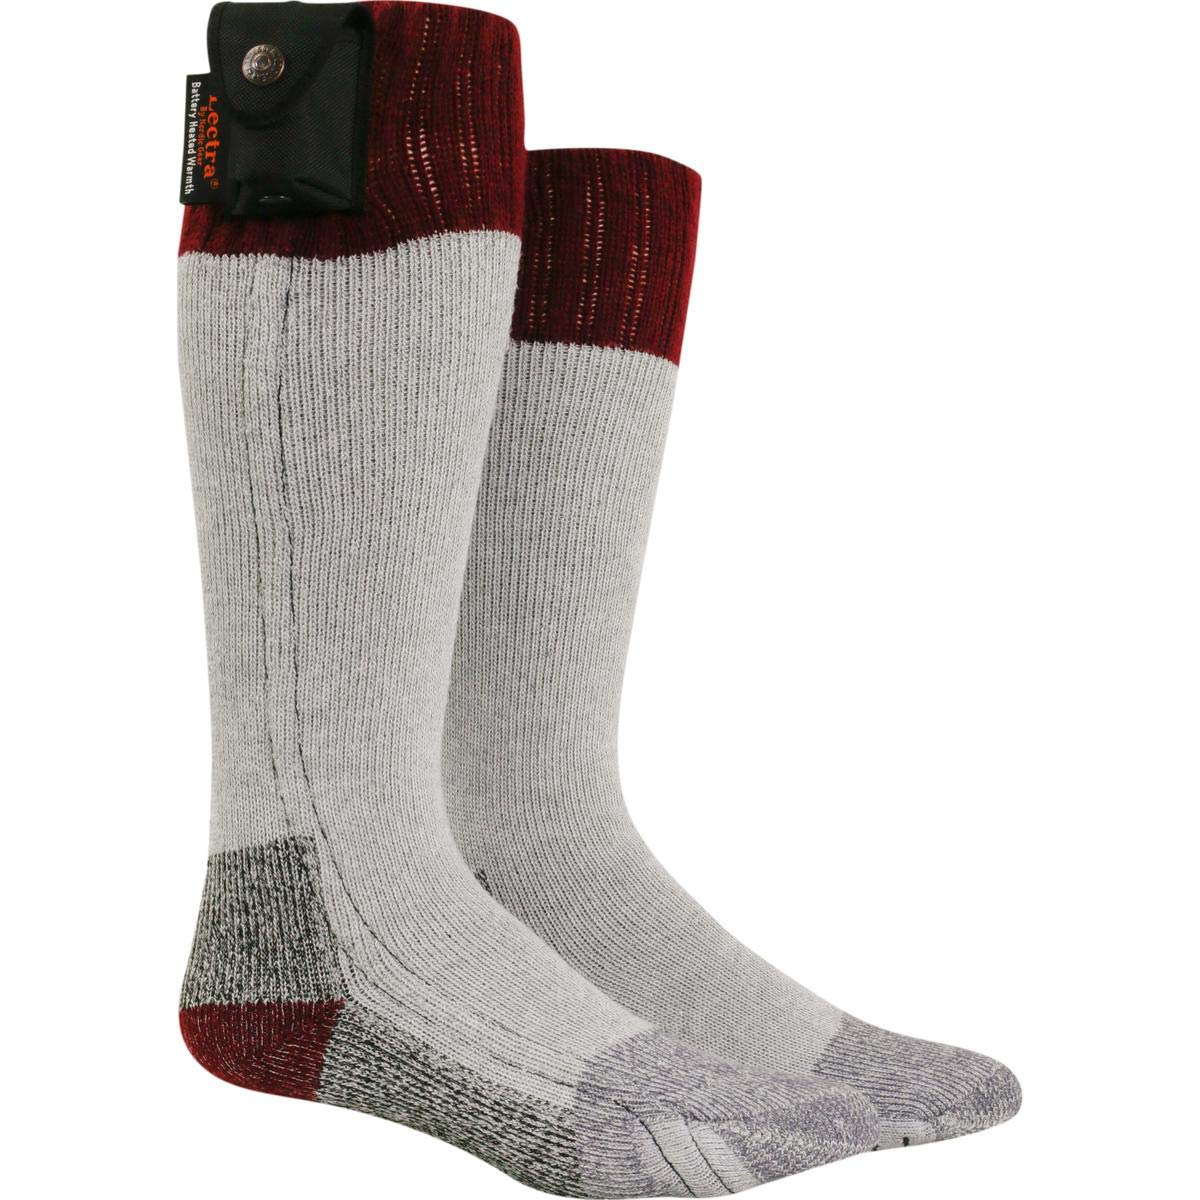 Nordic Gear Unisex Lectra Sox-Electric Battery Heated Socks - Medium - Maroon by Turtle Fur